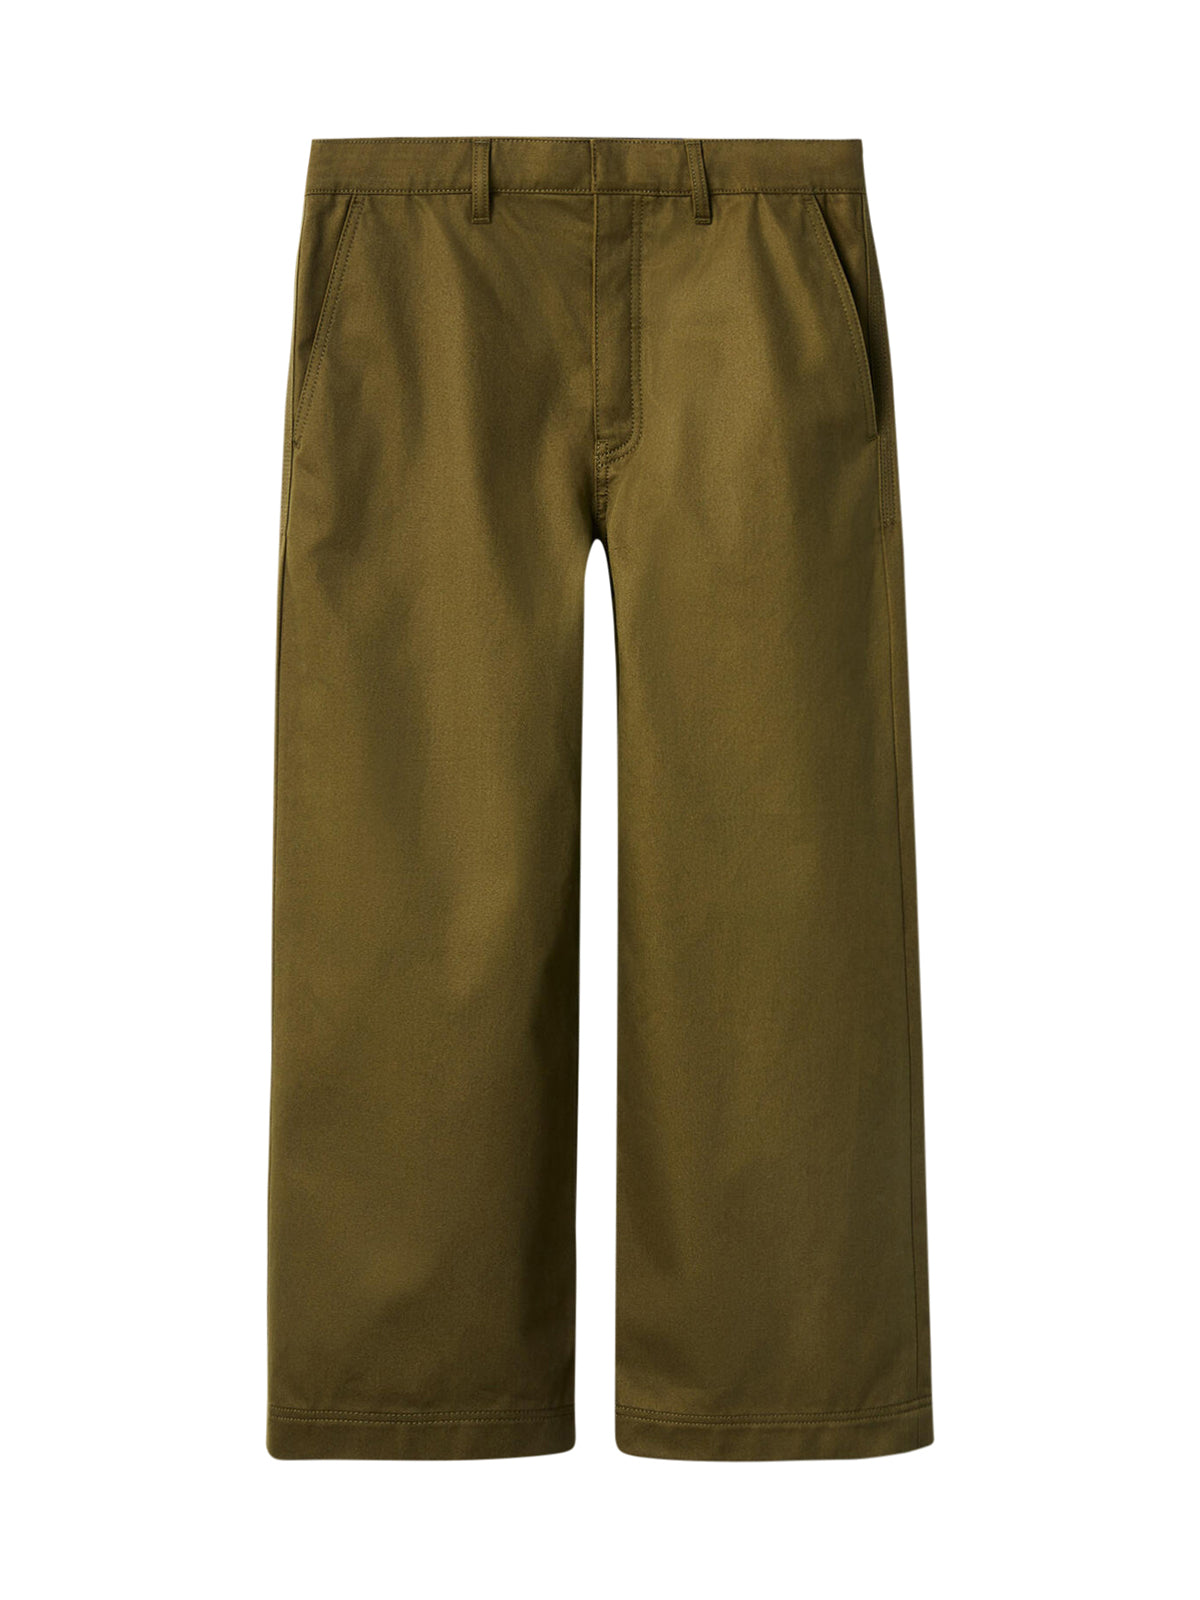 Workwear trouser in cotton